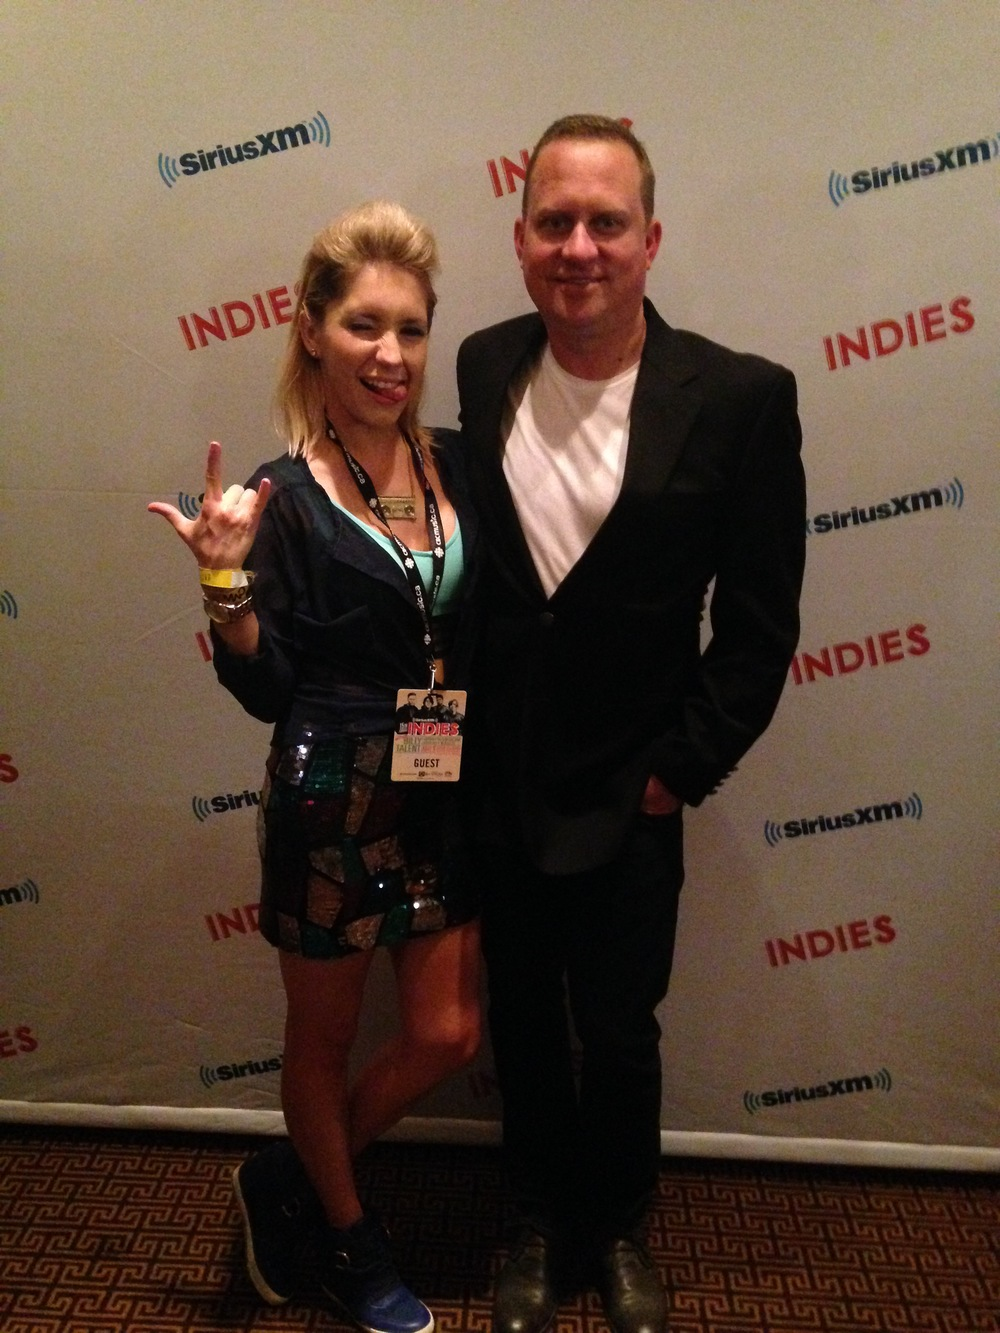 Sirius XM Indie Awards